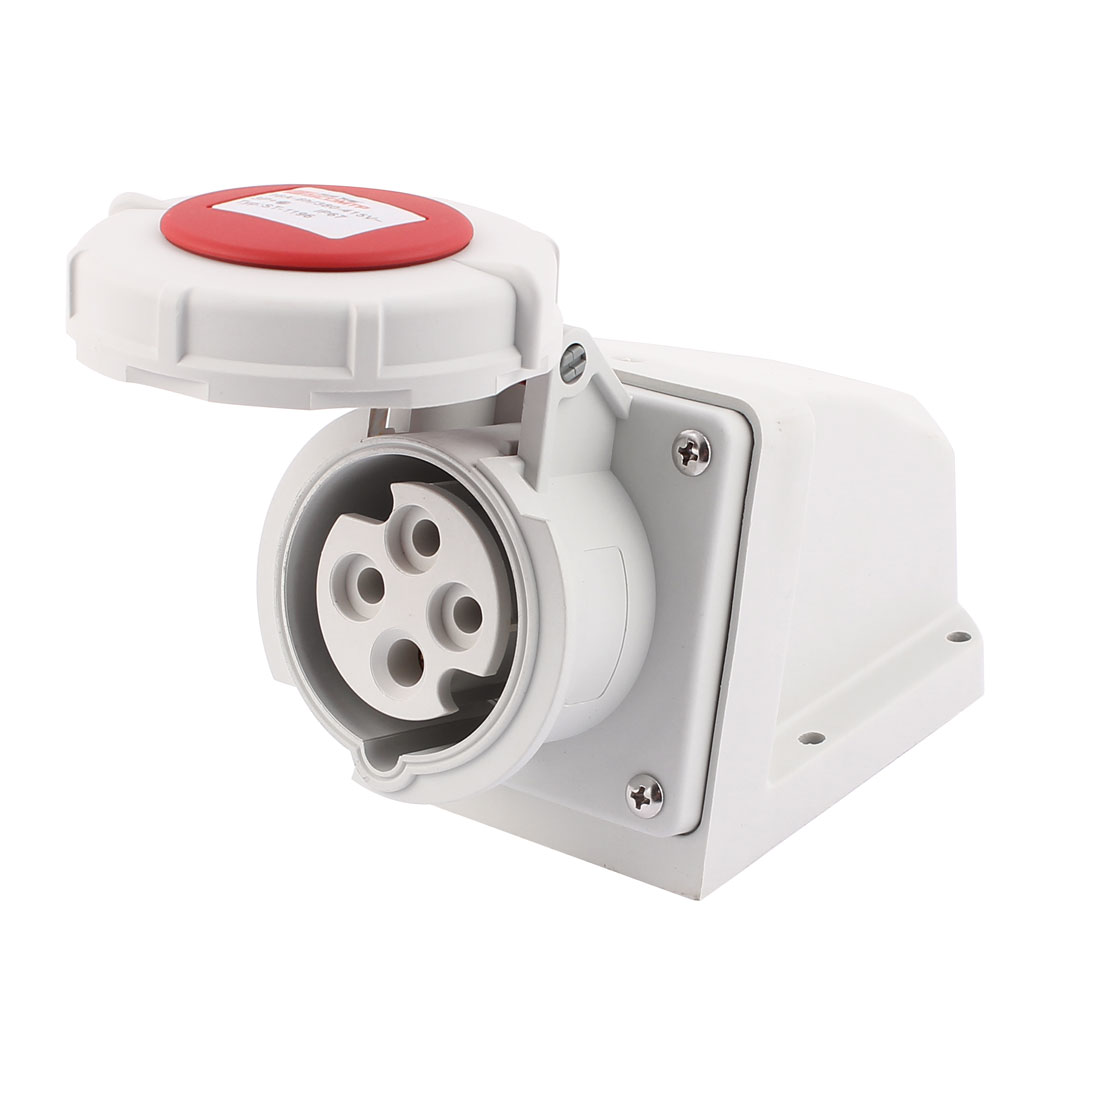 AC 380V-415V 16A IP67 3P+E 4-Terminal Female Industrial Caravan Socket